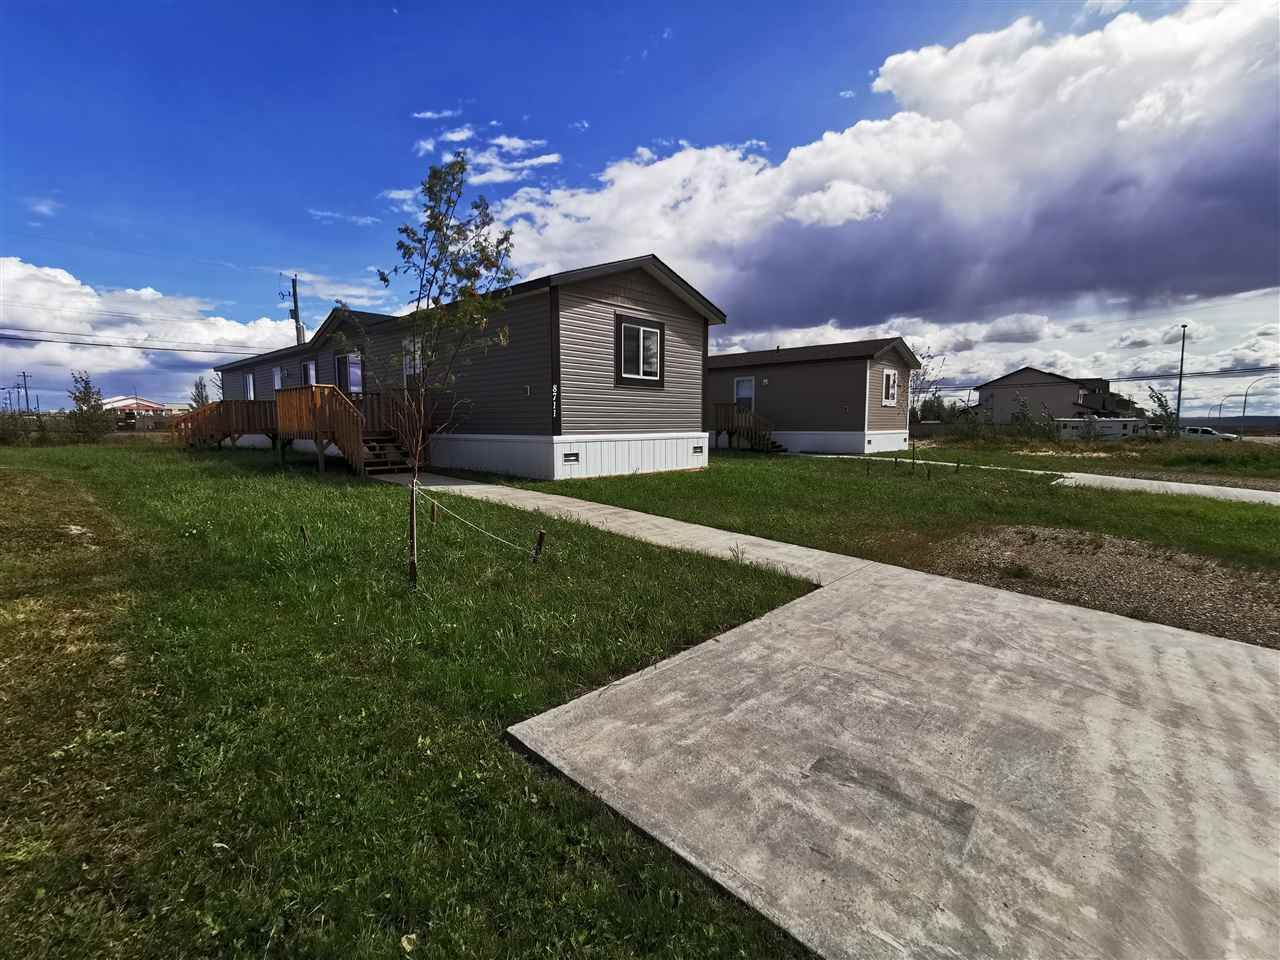 "Main Photo: 8711 74 Street in Fort St. John: Fort St. John - City SE Manufactured Home for sale in ""SOUTH ANNOEFIELD"" (Fort St. John (Zone 60))  : MLS®# R2553301"